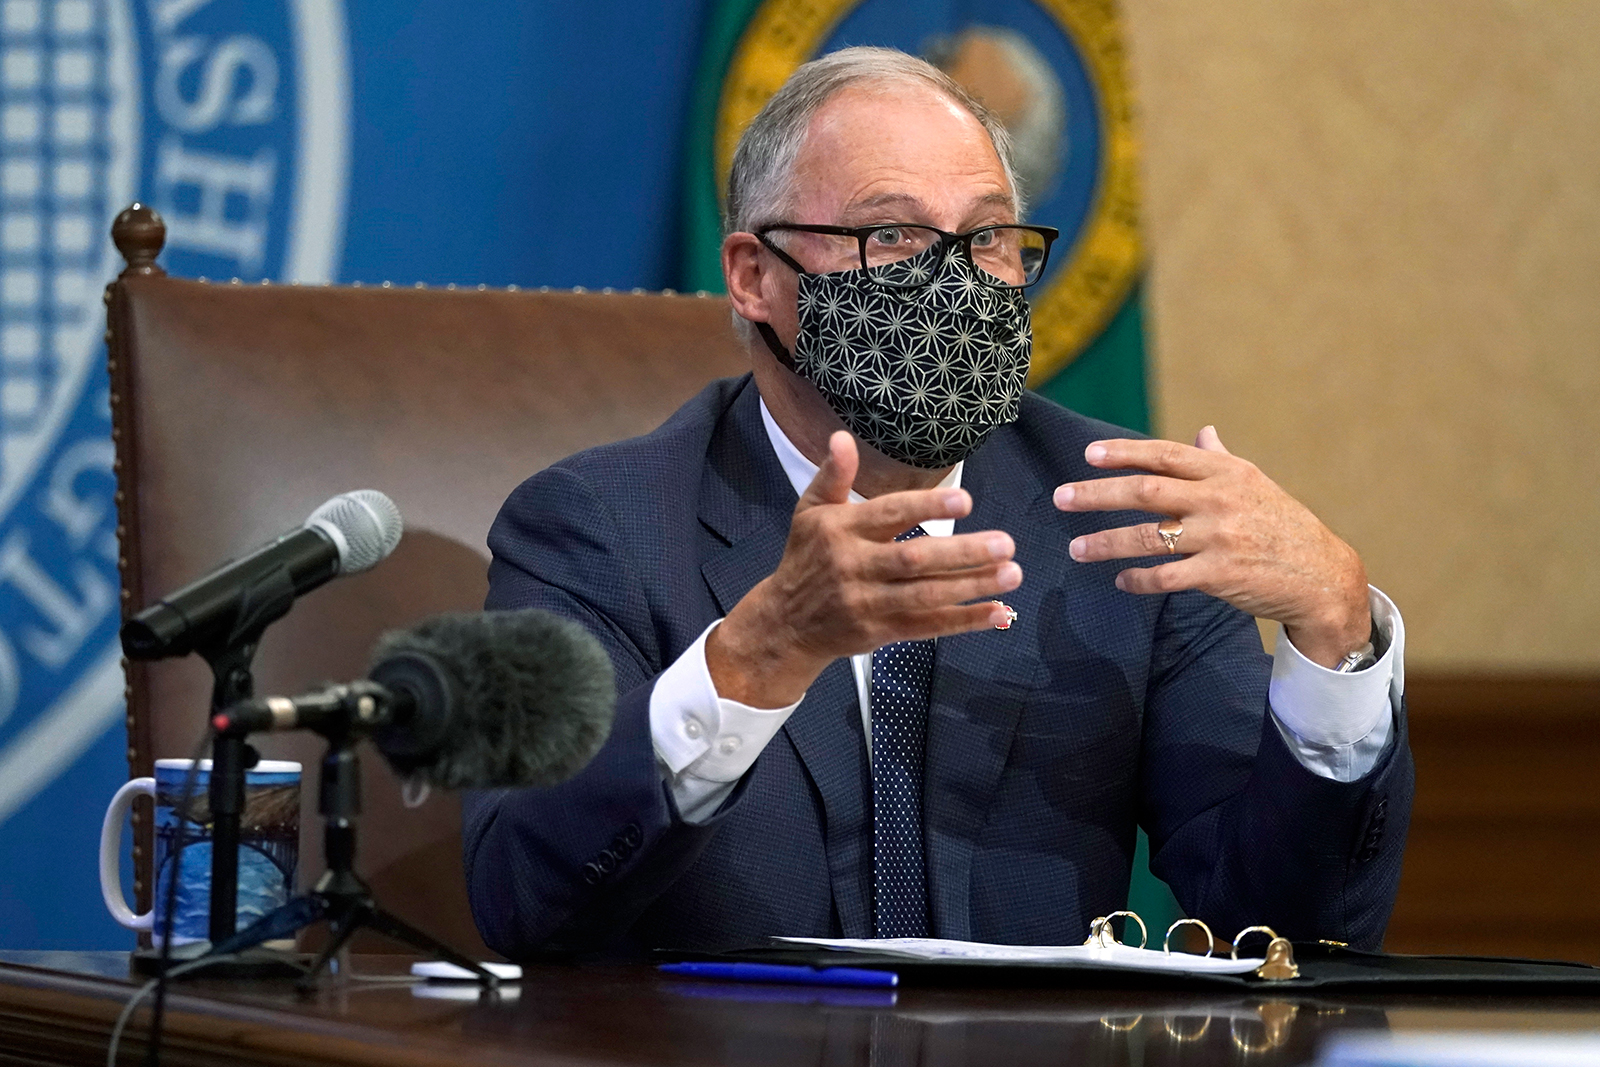 Washington Gov. Jay Inslee speaks during a news conference on Nov. 15, at the Capitol in Olympia, Washington.